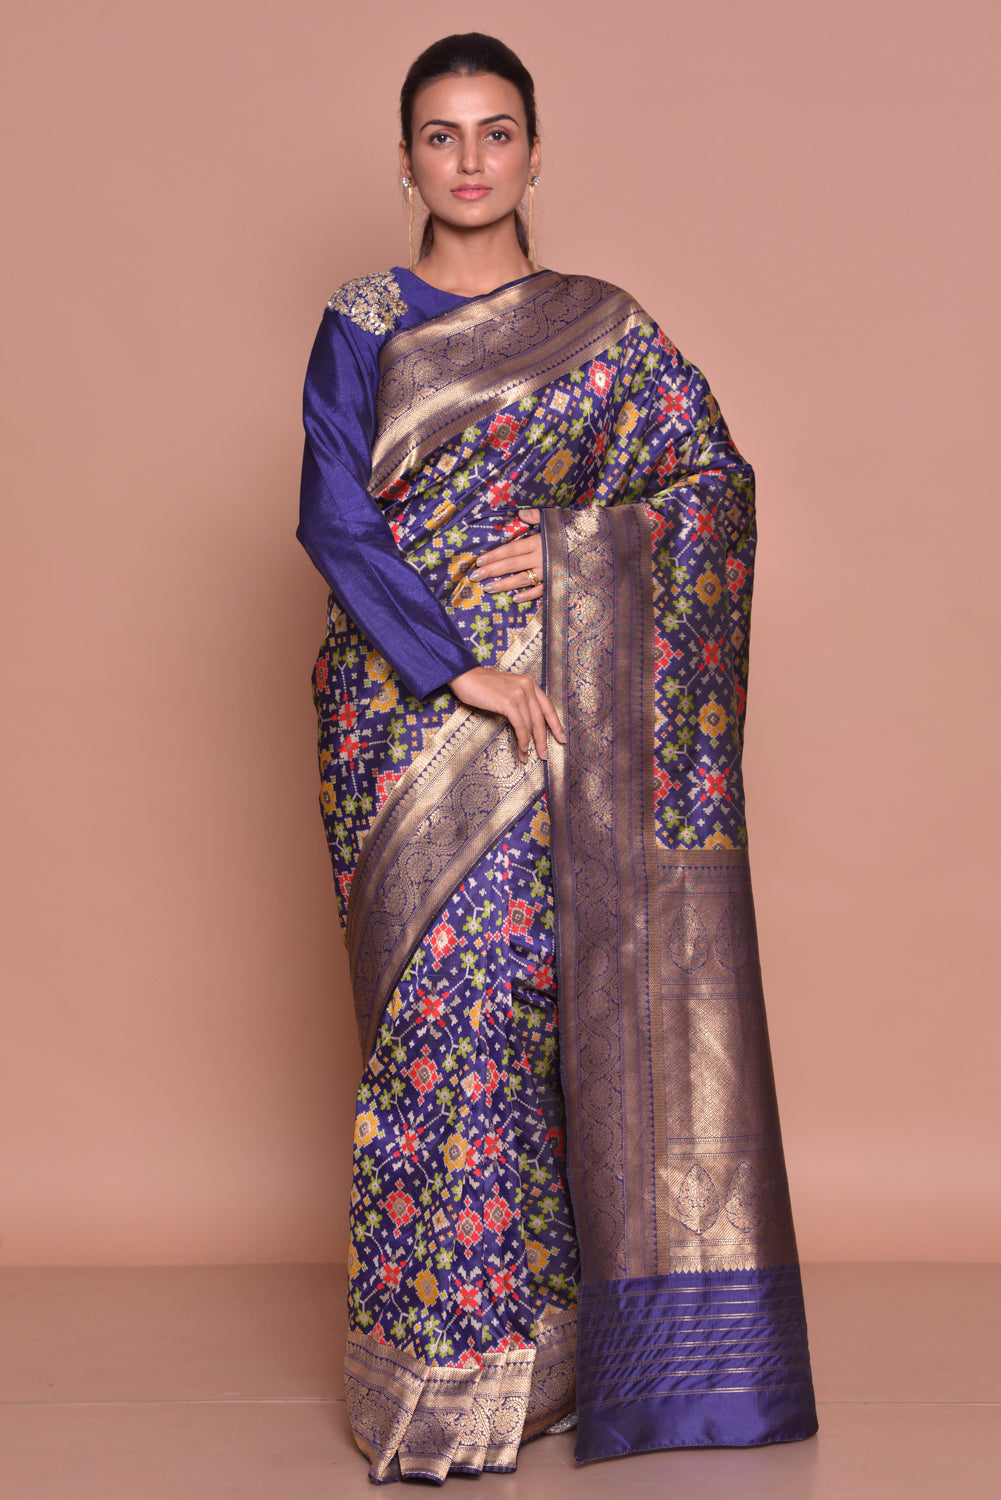 Shop gorgeous dark blue Banarasi saree online in USA with embroidered saree blouse. Set ethnic fashion goals with exquisite silk sarees with blouse, Banarasi sarees, Kanchipuram saris from Pure Elegance Indian luxury clothing store in USA.-full view